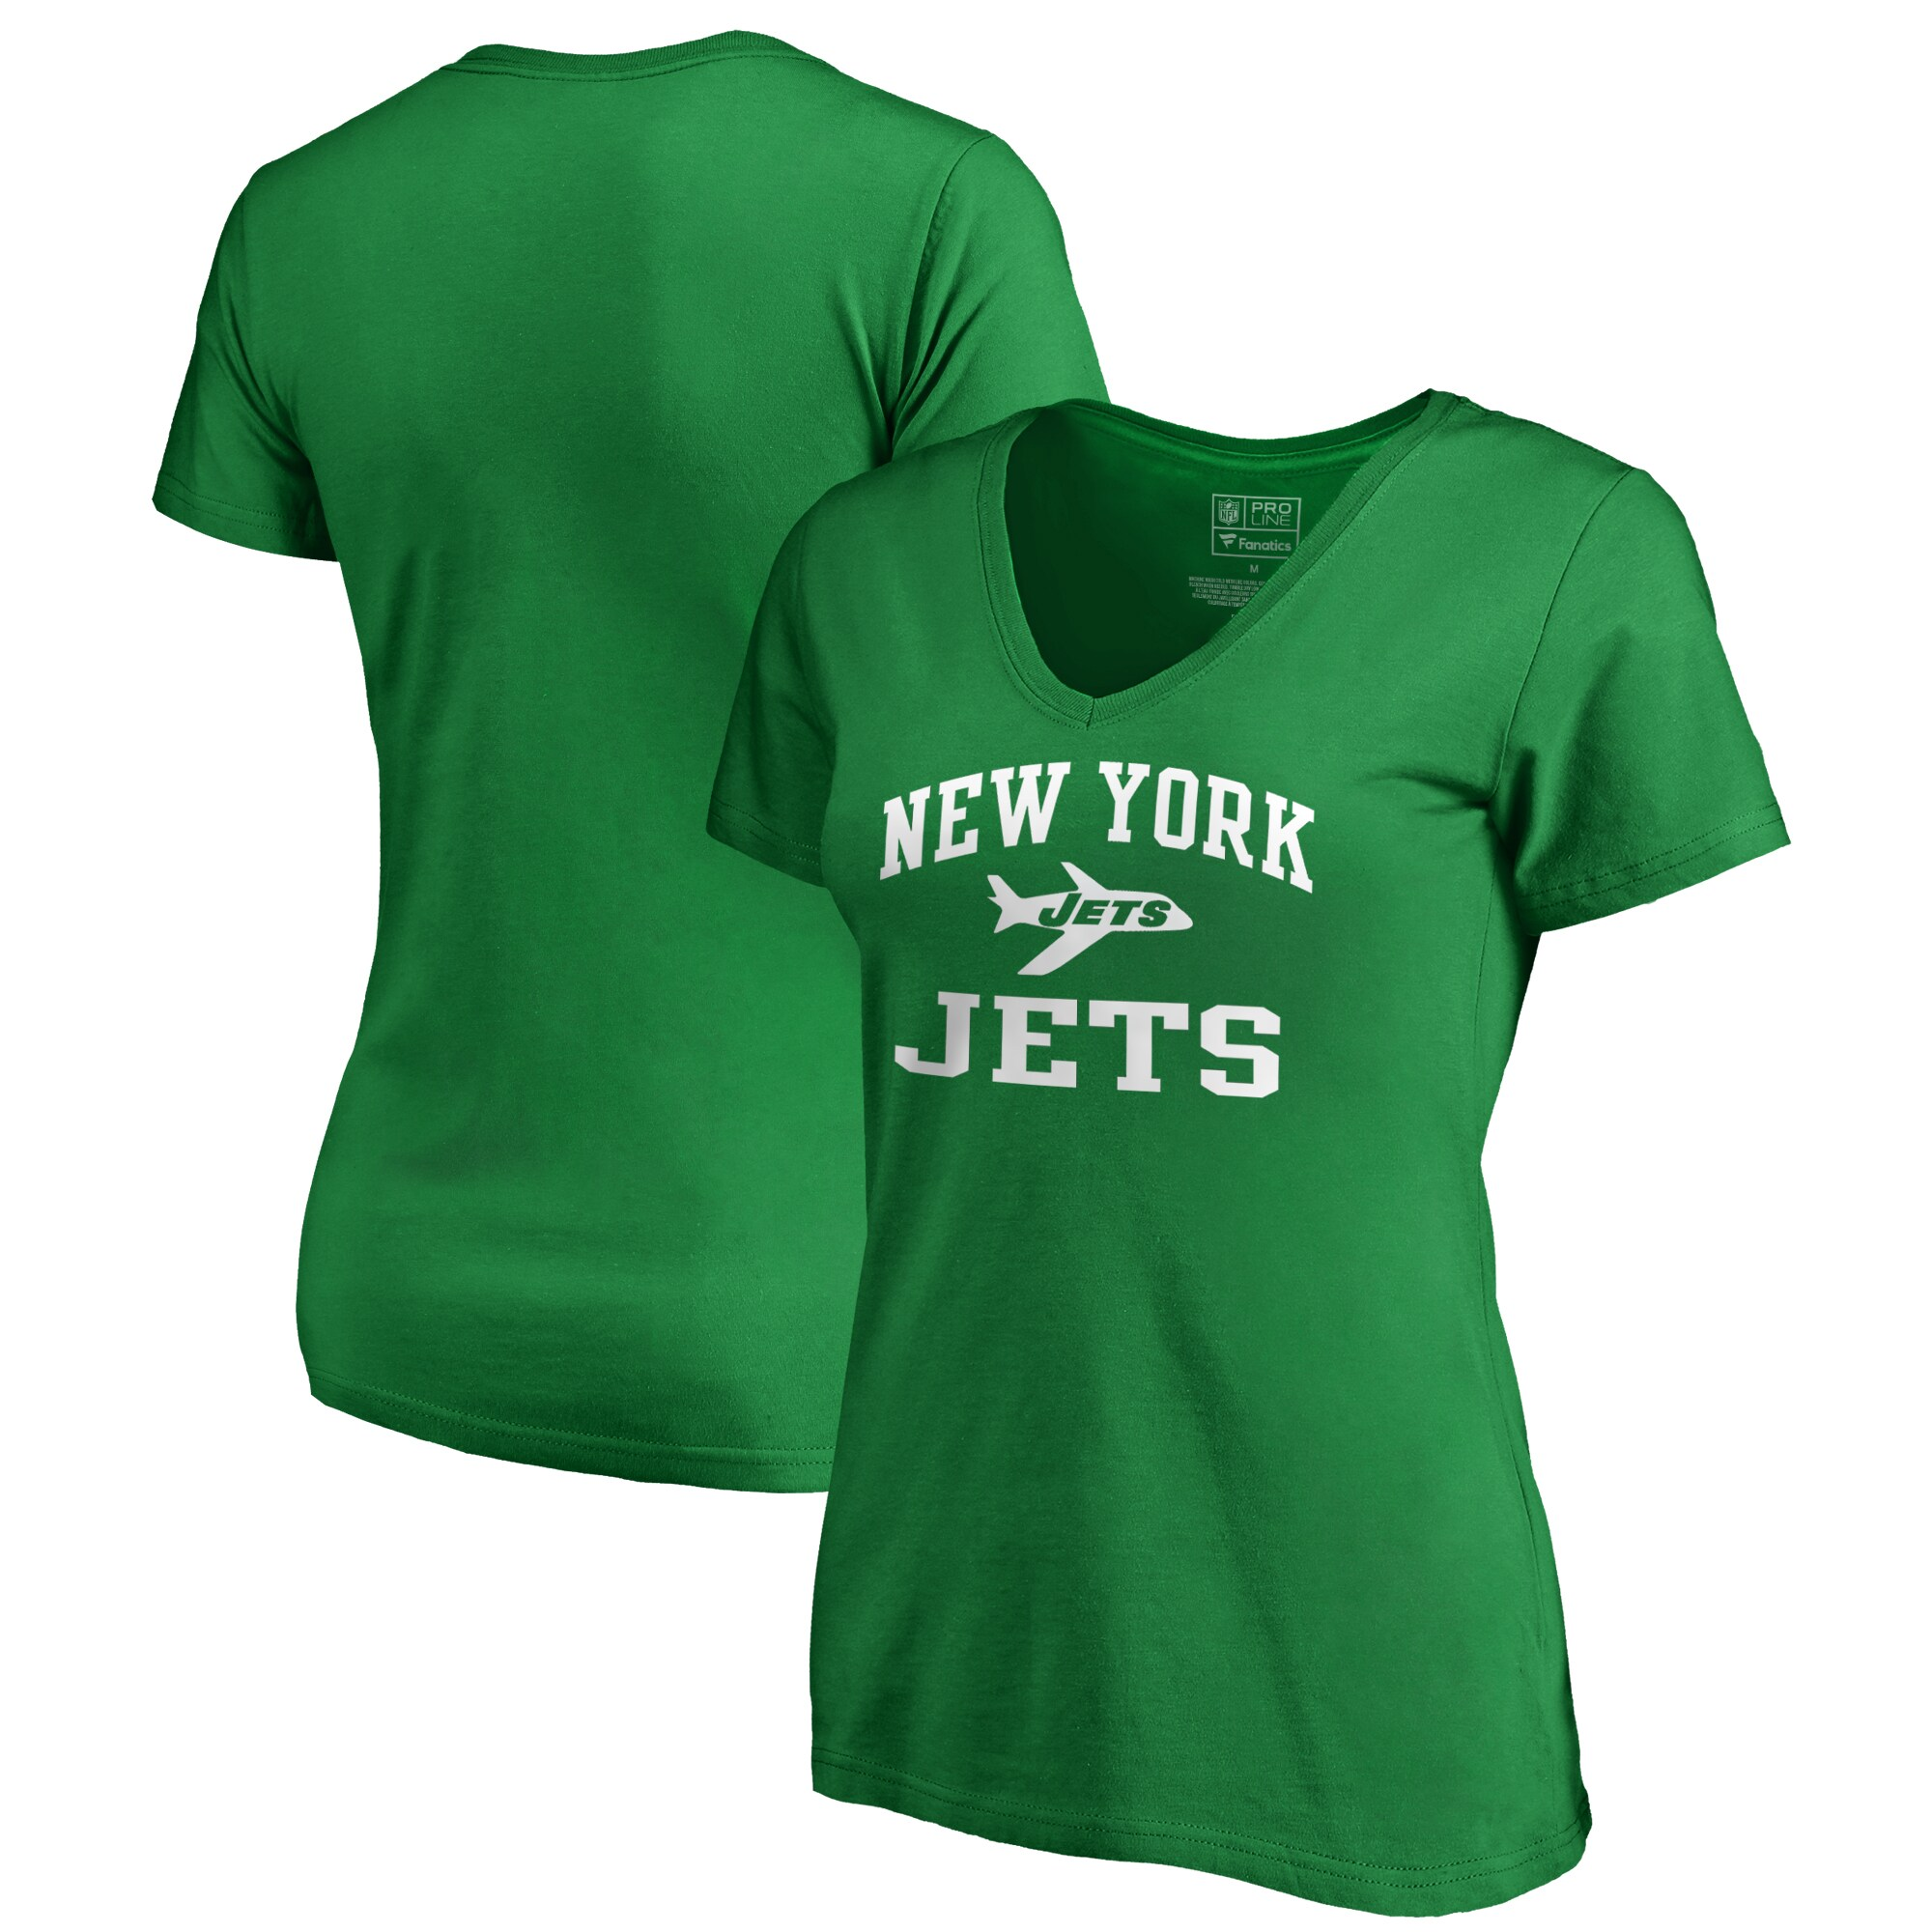 New York Jets NFL Pro Line by Fanatics Branded Women's Vintage Collection Victory Arch V-Neck T-Shirt - Kelly Green